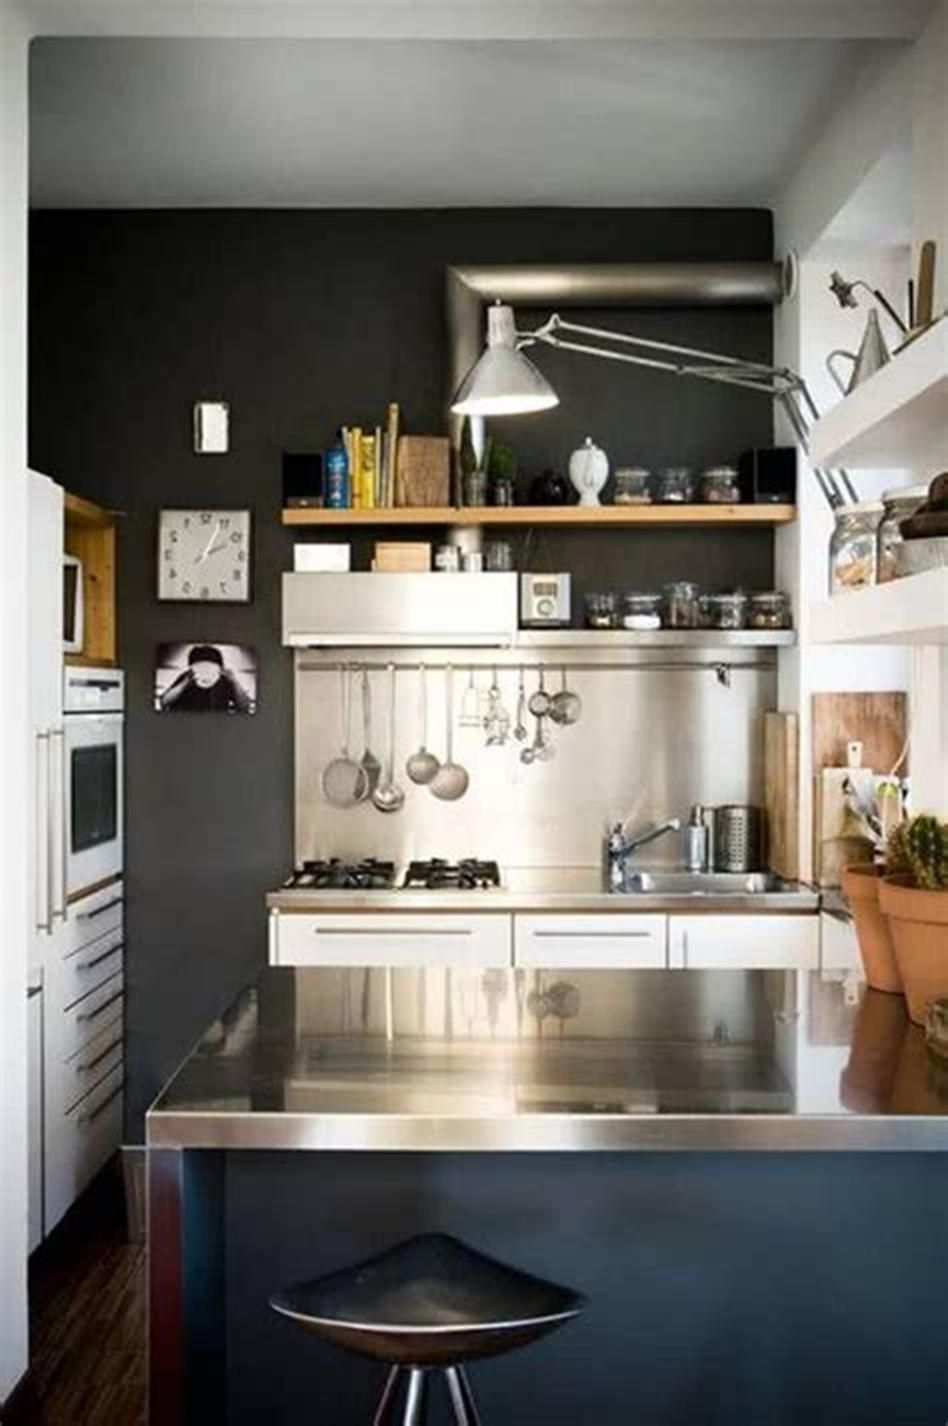 50+ Amazing Modern Kitchen Design Ideas for Small Spaces ...